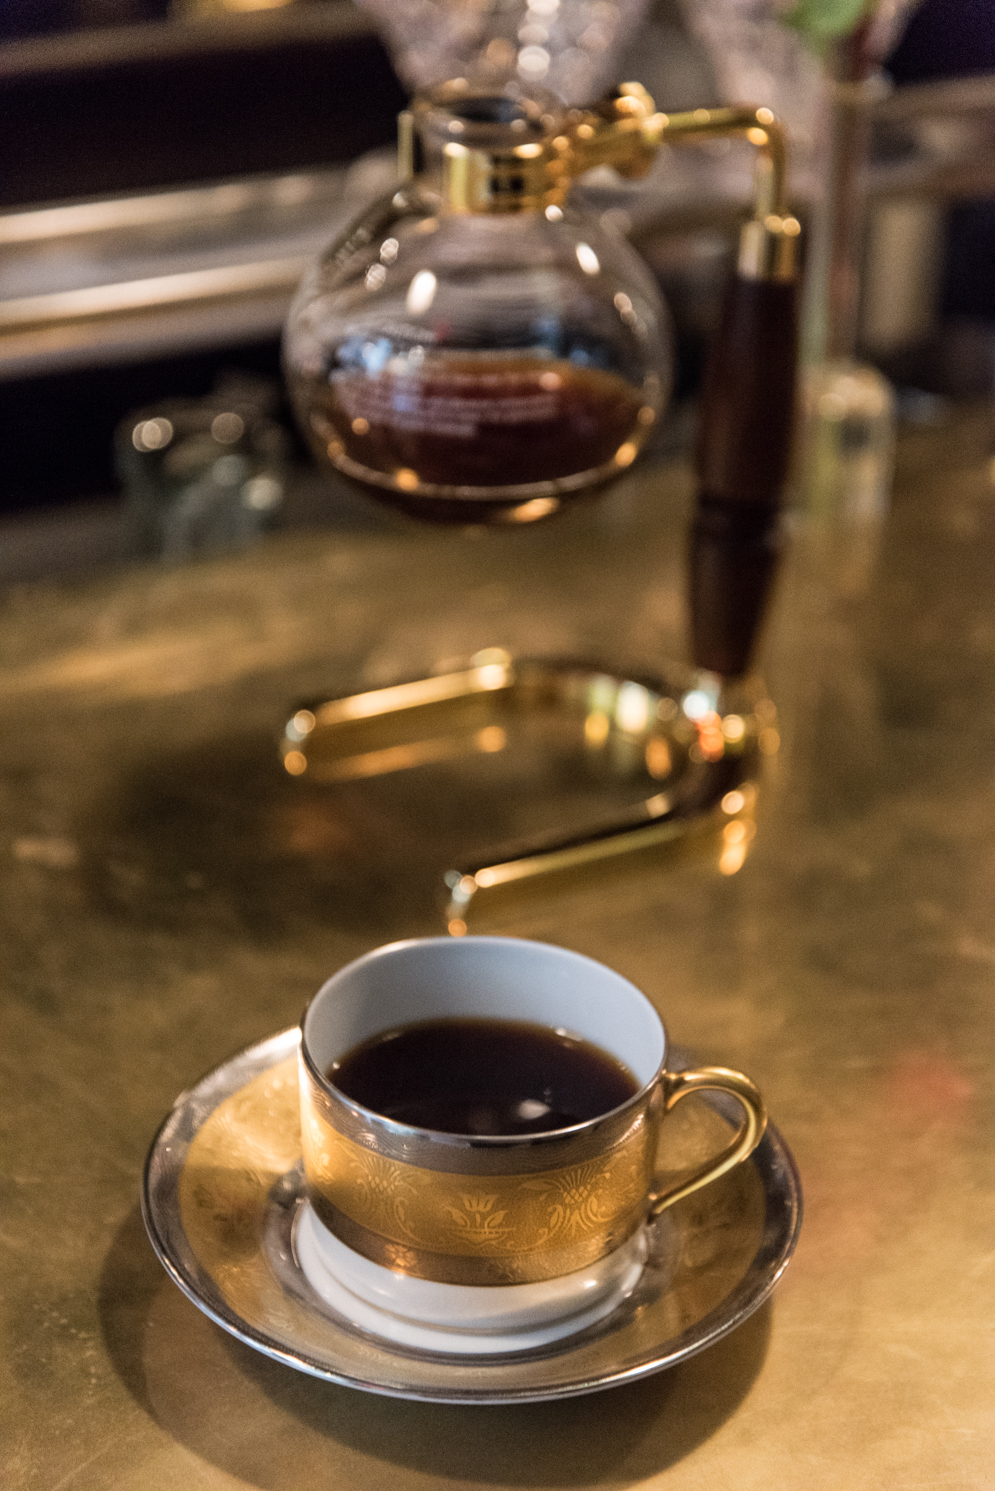 Hi Collar Coffee Bar Japanese East Village New York City Photo Credit rockmamanyc6.jpg